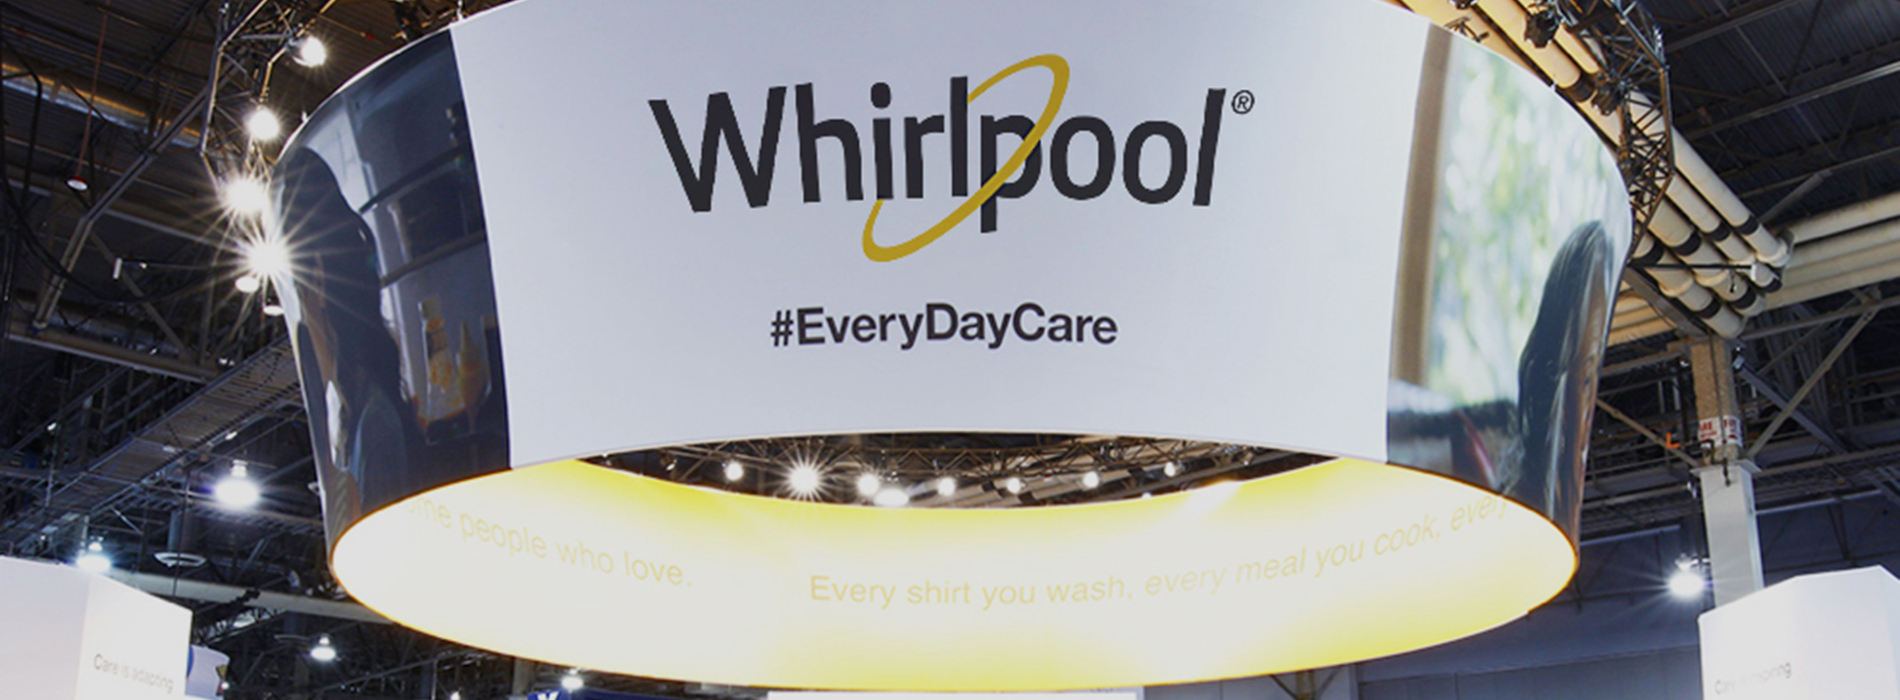 whirlpool corporation giving erp a Of the earnings to be reported this week, we will focus on household stocks, whirlpool corporation (whr) and select comfort corporation (scss), which are slated to report second-quarter 2016.